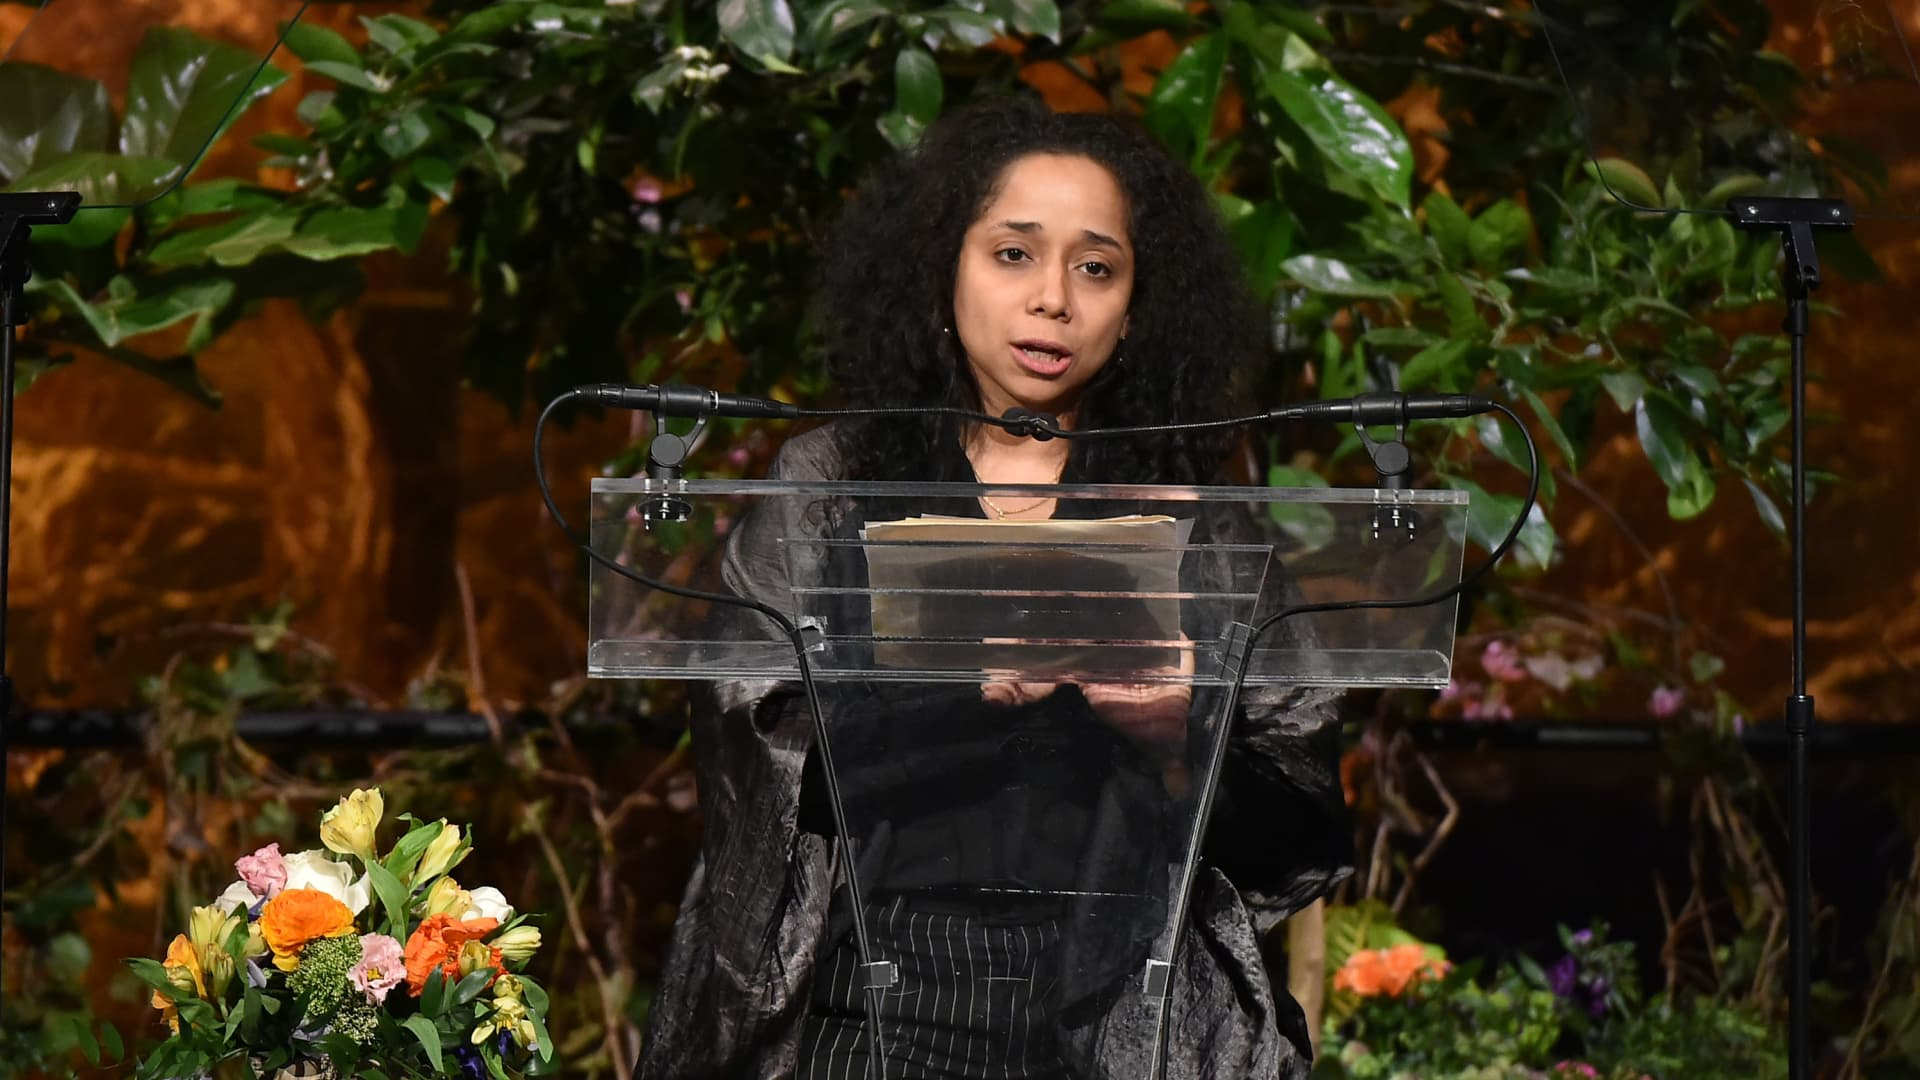 United States Ambassador to Uruguay, Julissa Reynoso speaks onstage at Variety's Power of Women New York presented by Lifetime at Cipriani 42nd Street on April 24, 2015 in New York City.